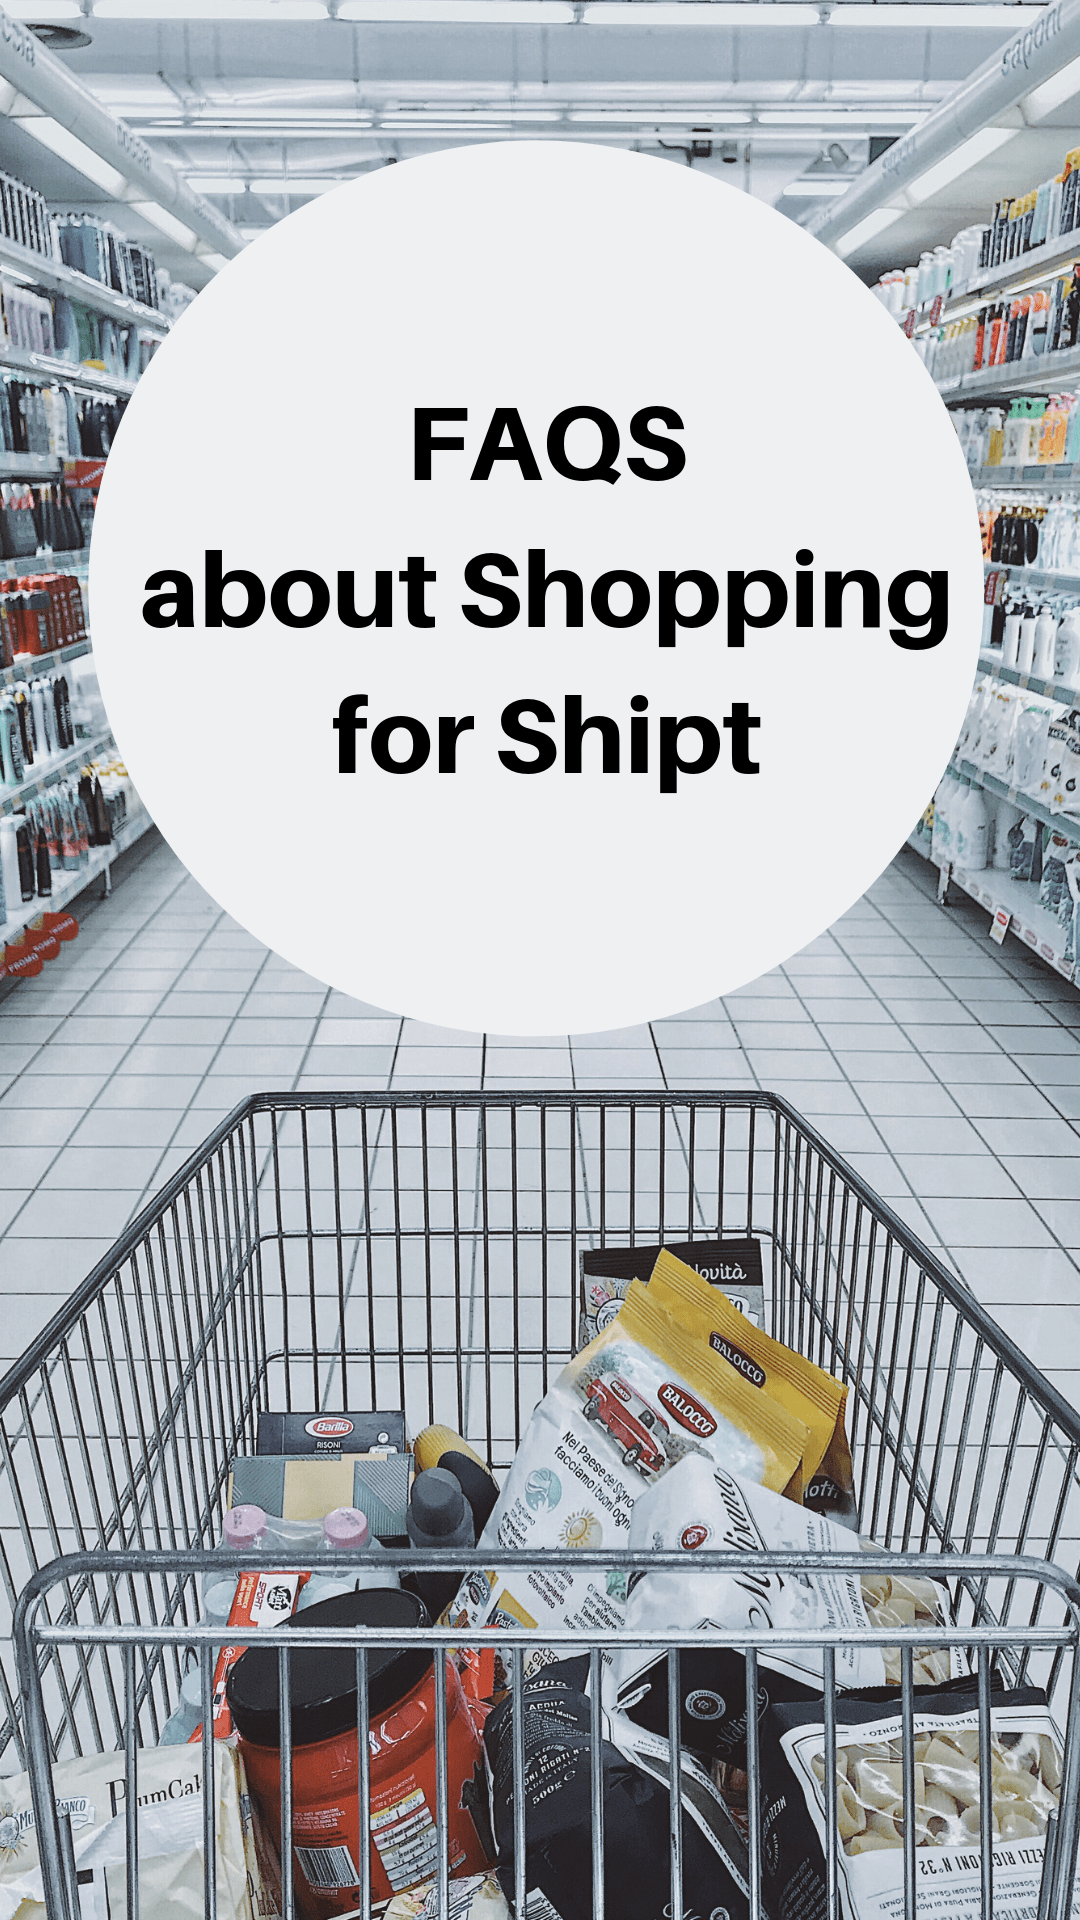 FAQS about Shopping for Shipt - Redesigning Happiness